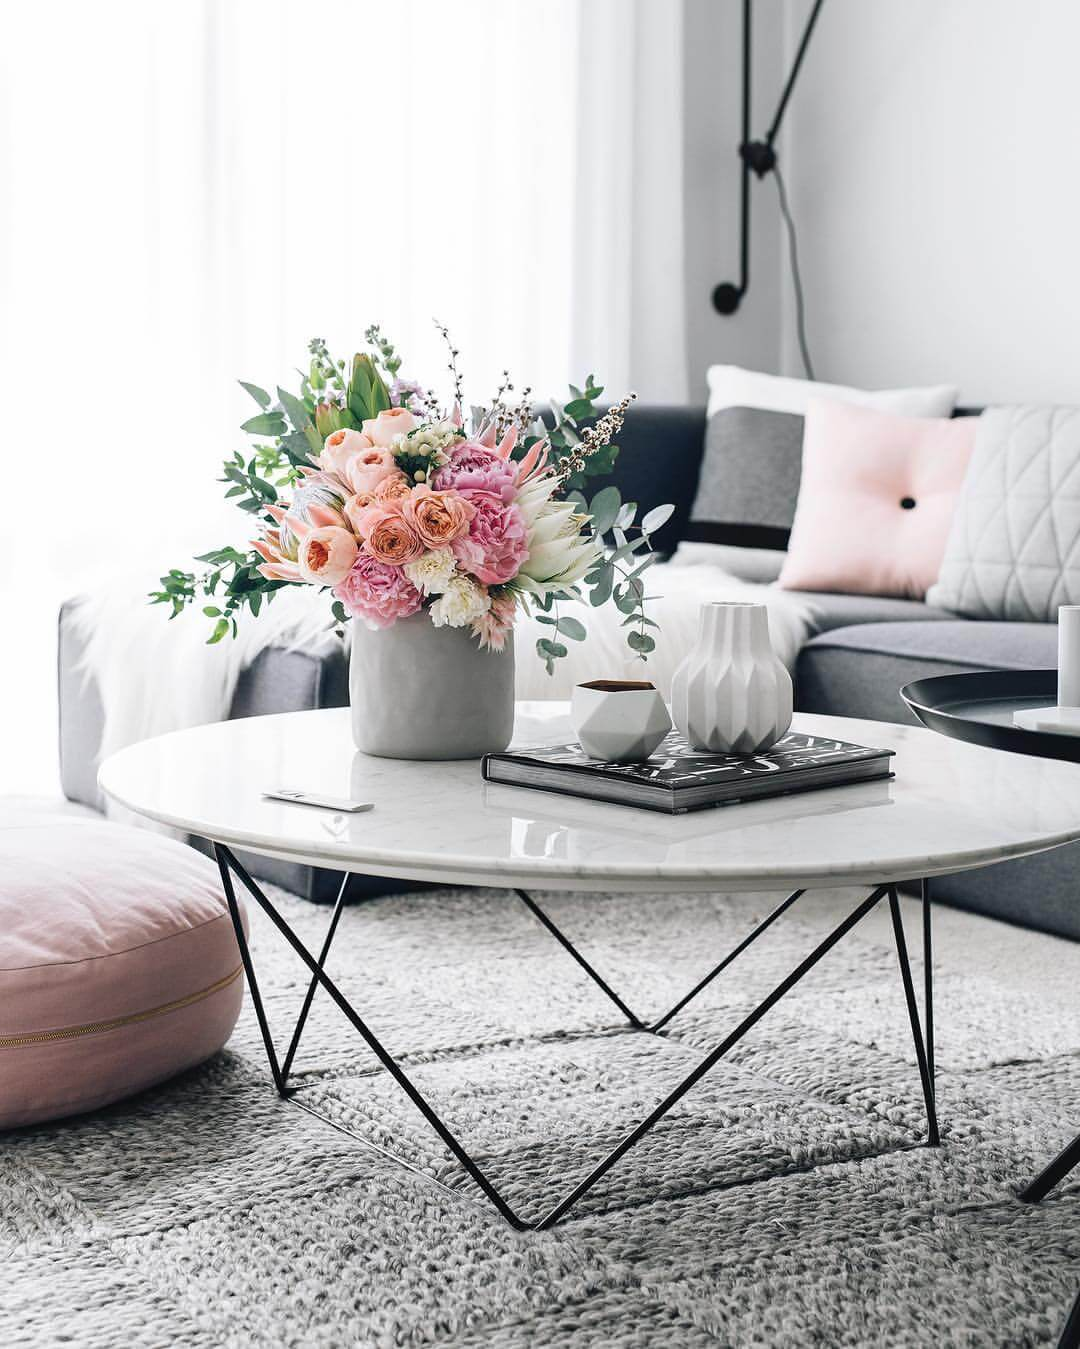 decoration ideas for living room table la z boy furniture 37 best coffee decorating and designs 2019 1 peachy spring flower arrangement with geometric vases